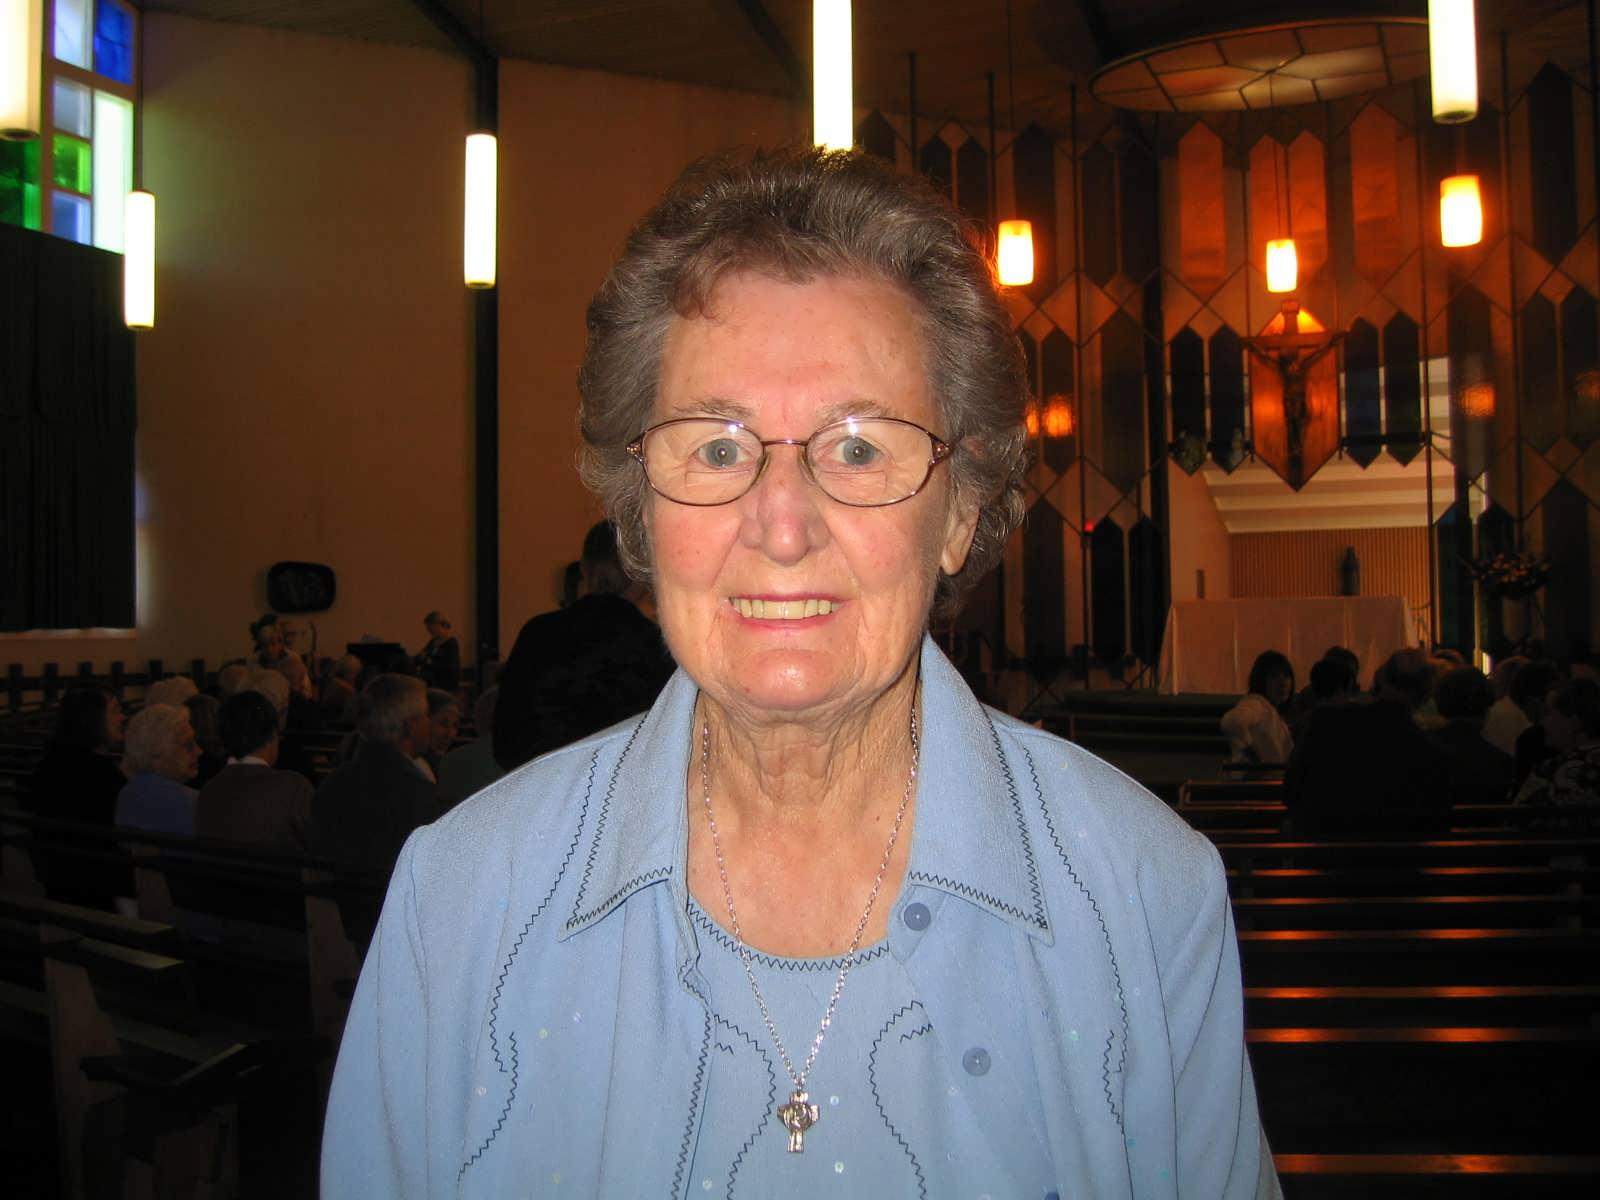 Sr Therese Jubilee Mass 1 March 2008